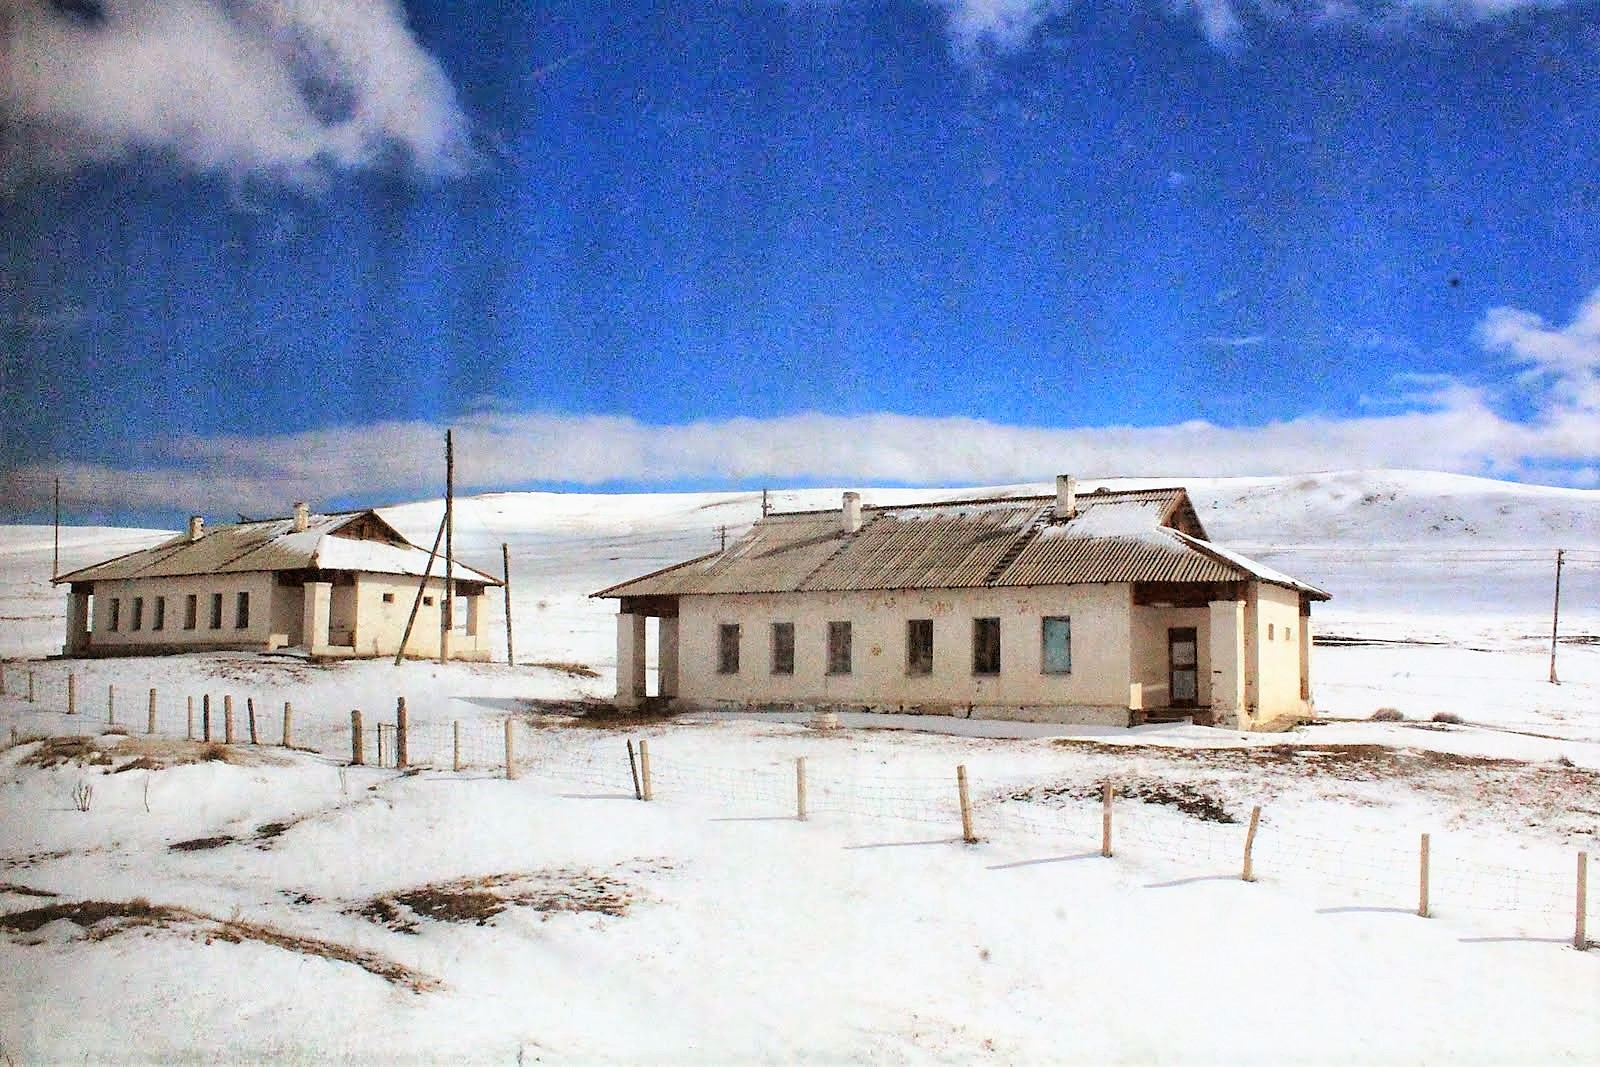 House covered in snow - Mongolia